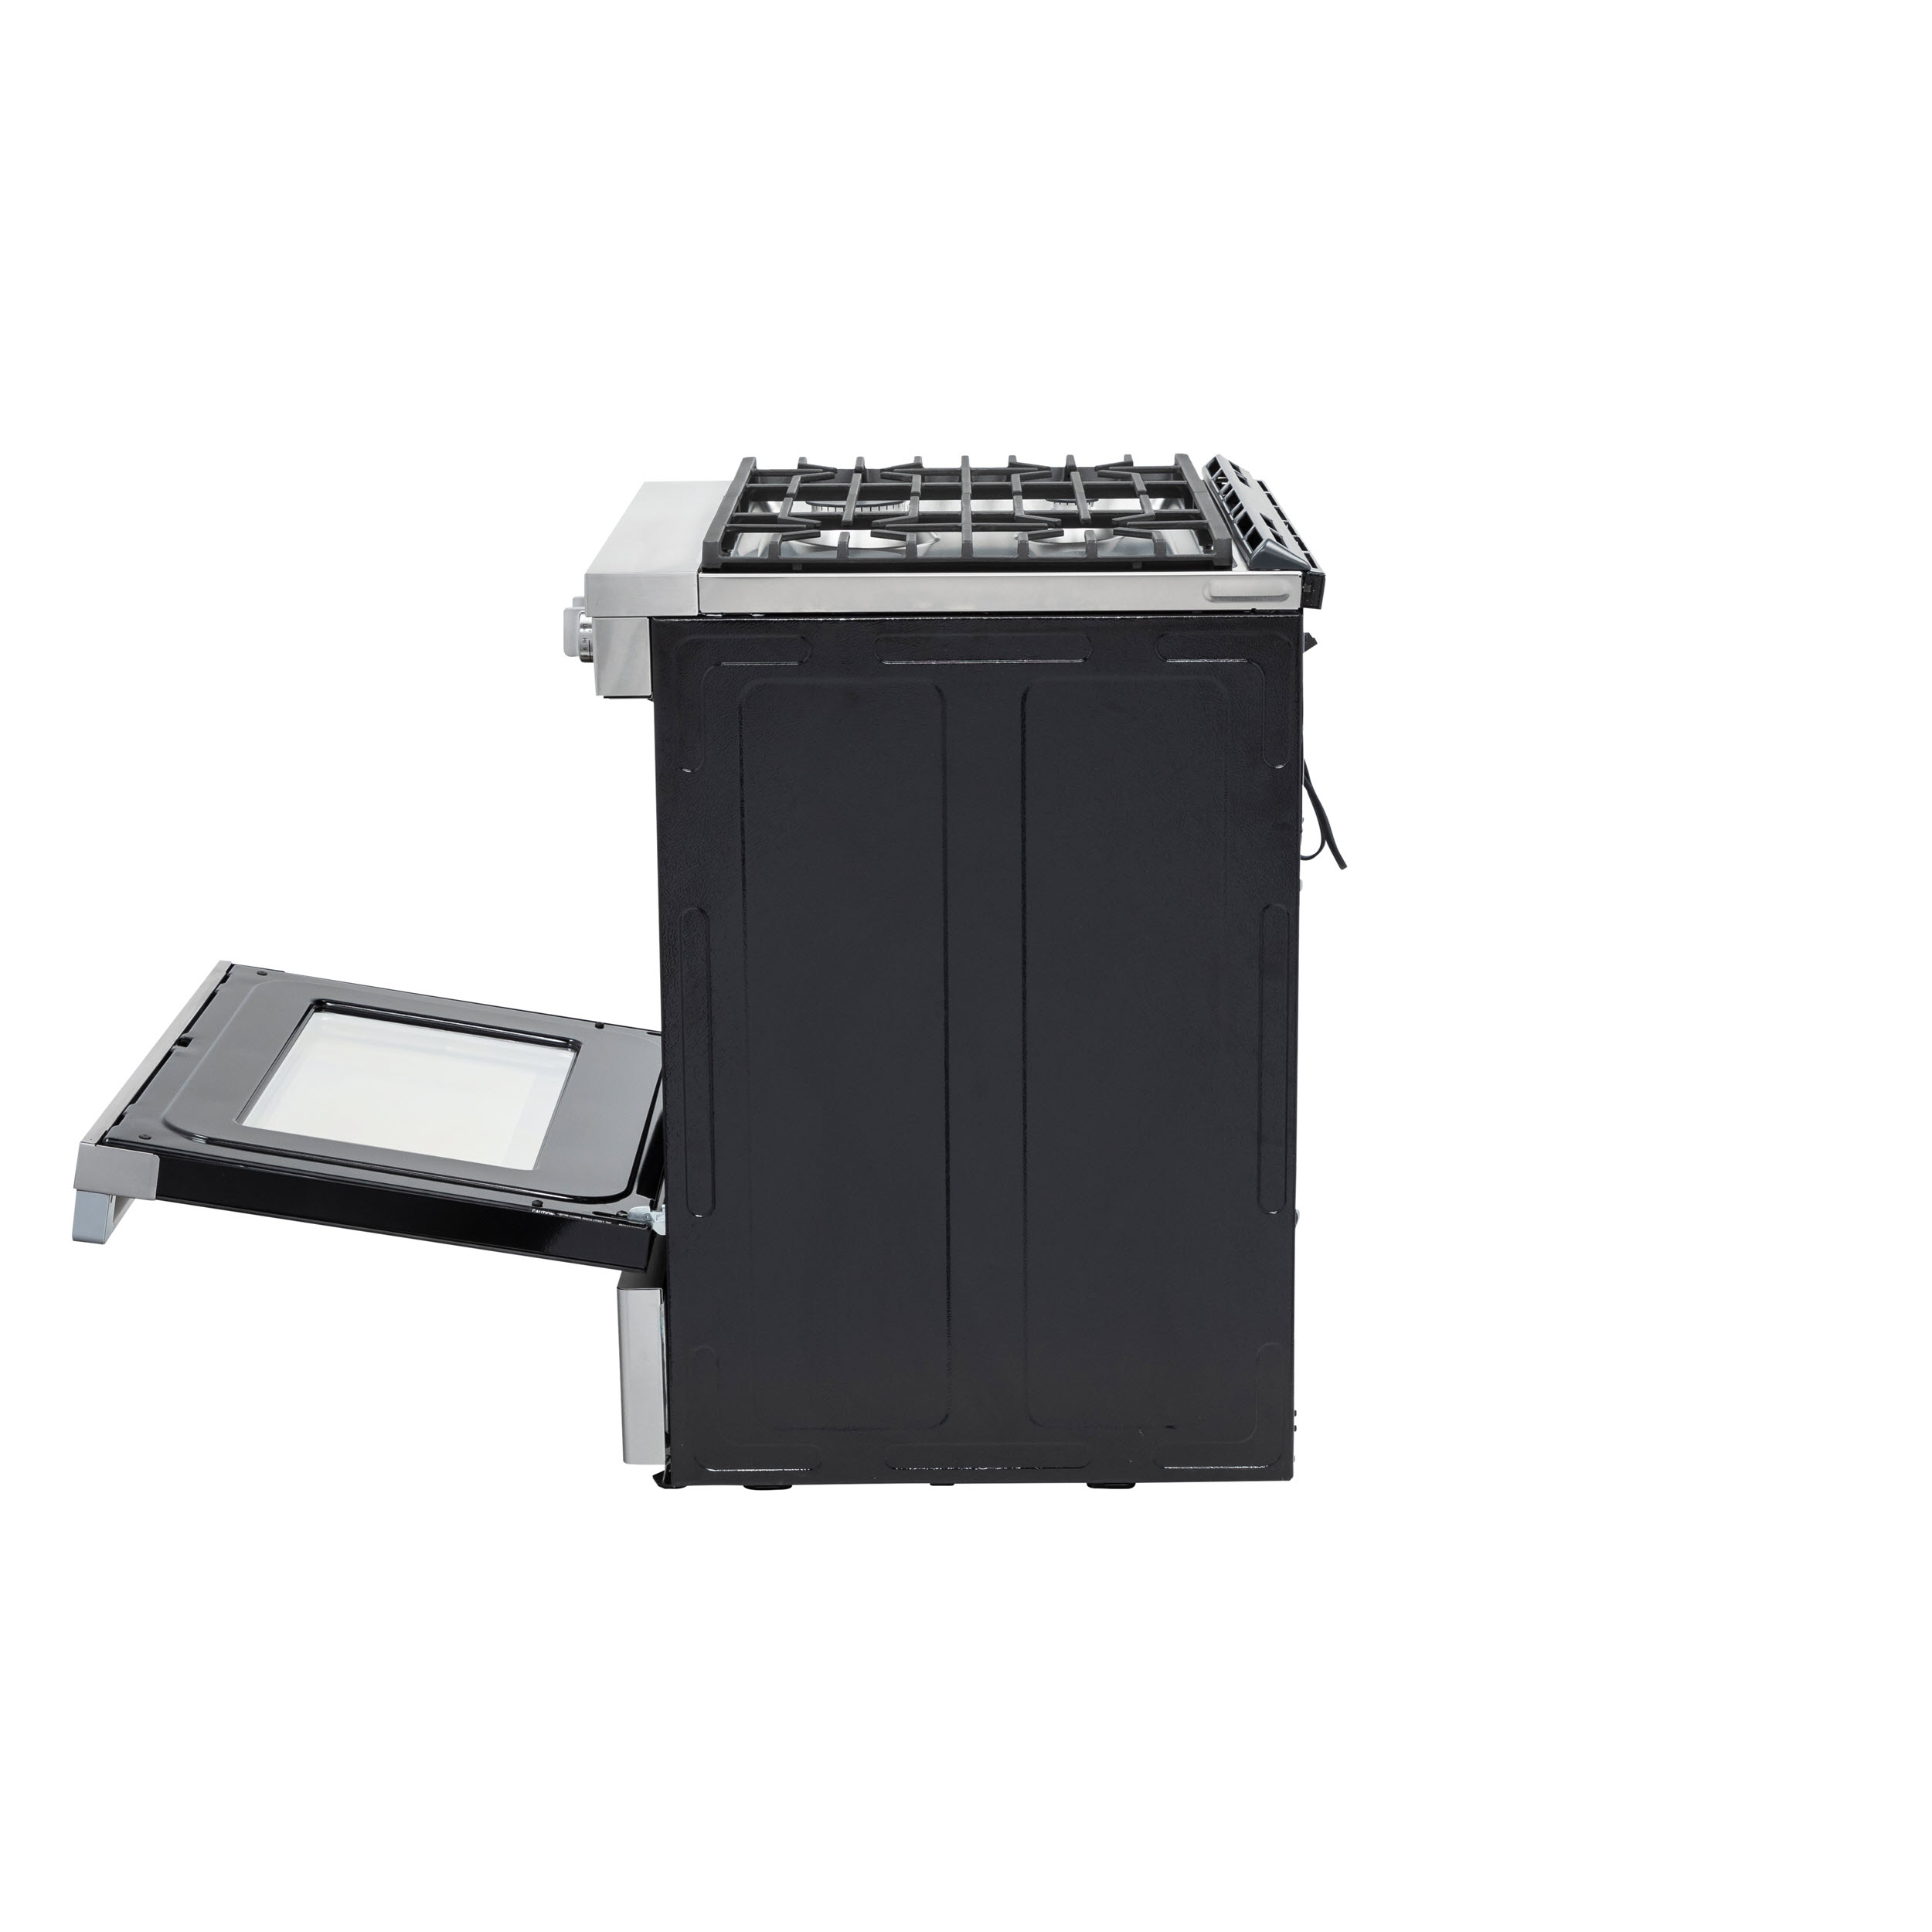 """Model: QGSS740RNSS 